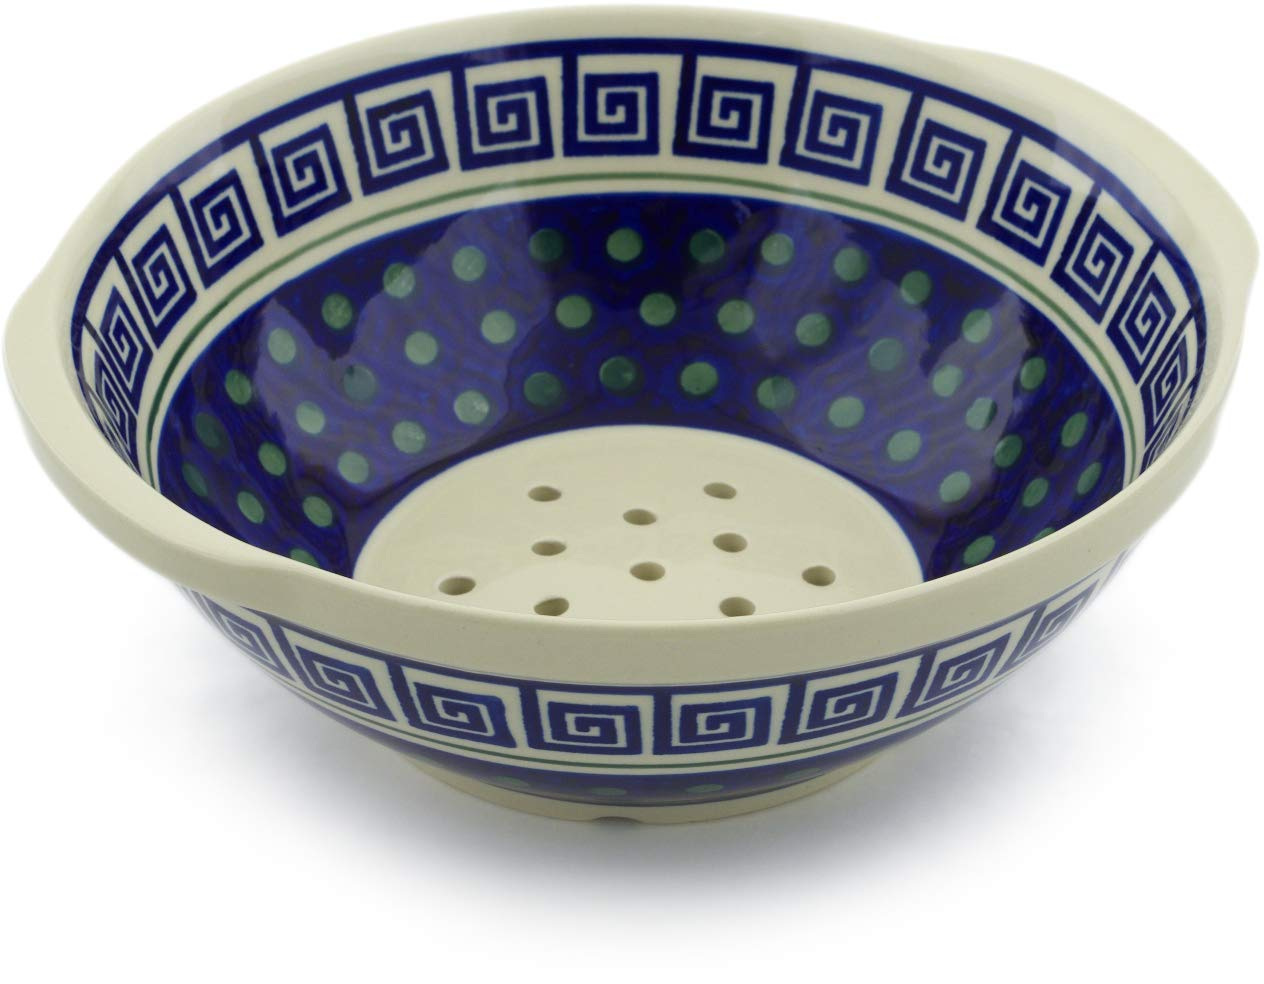 Polish Pottery 10-inch Colander (Greek Key Theme) + Certificate of Authenticity